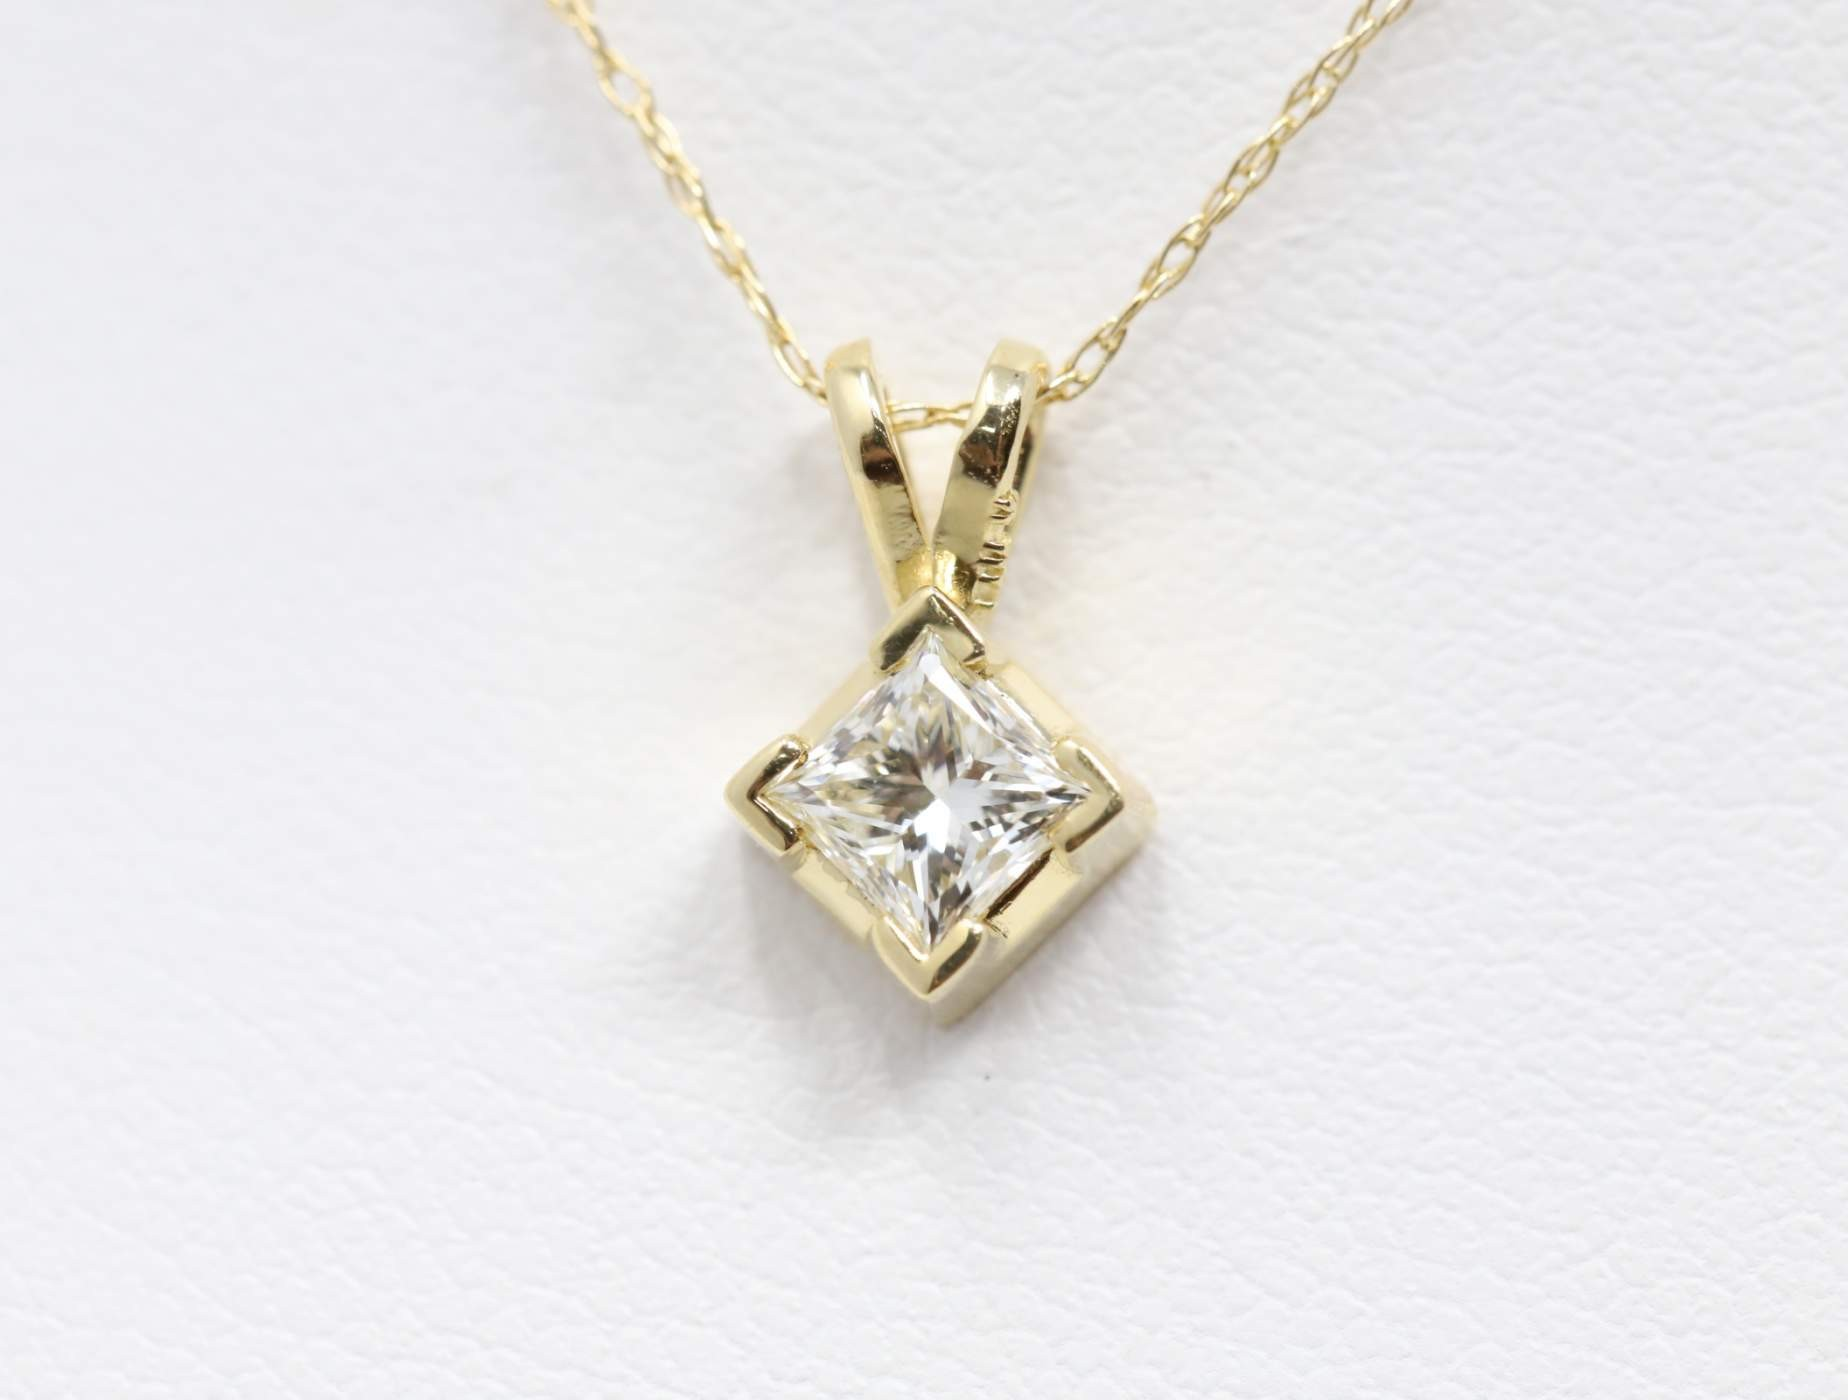 14k Yellow Gold Lady's Diamond Pendant